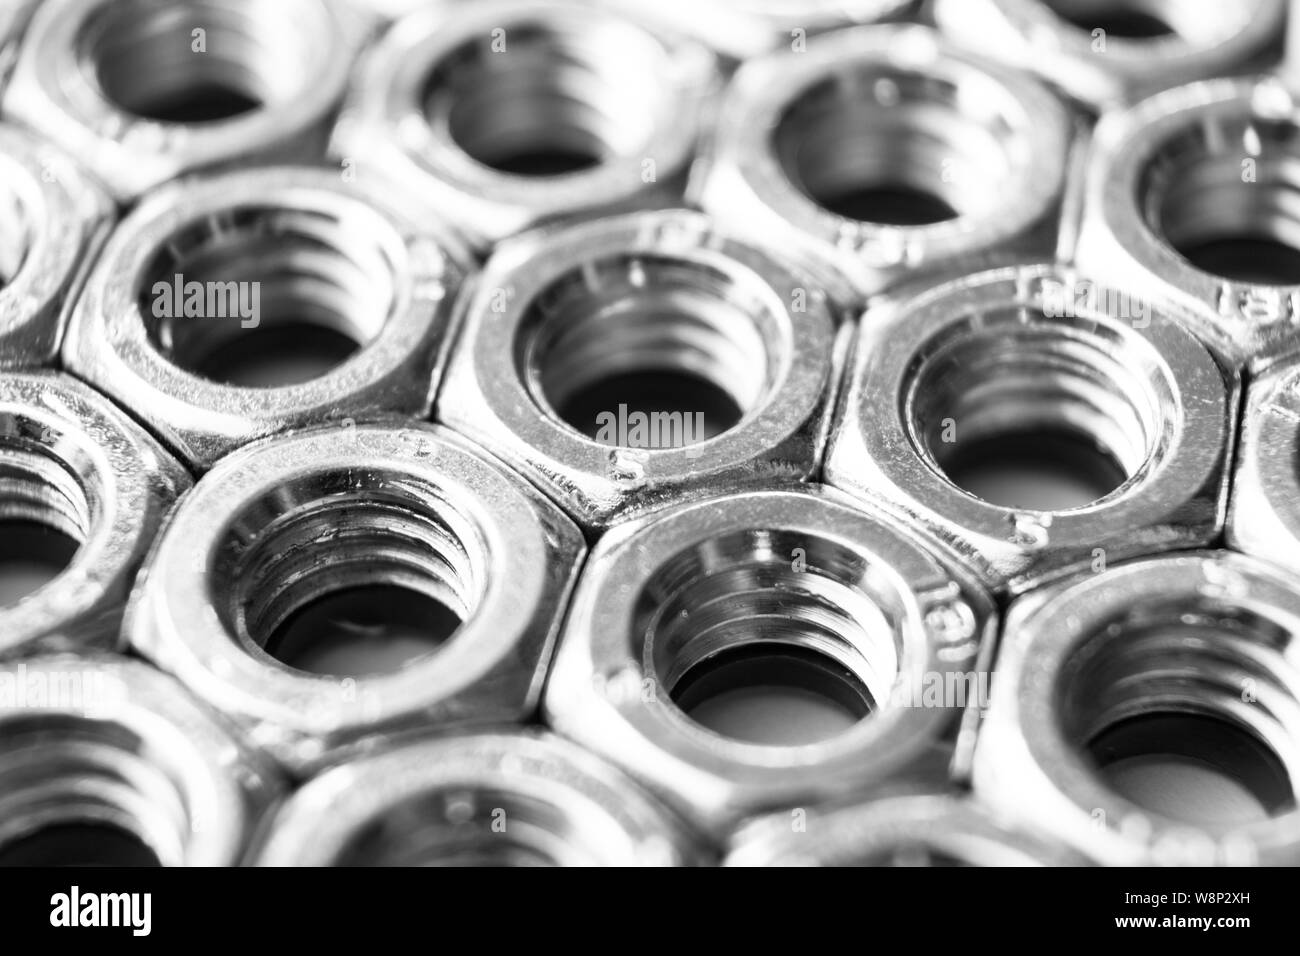 Metal nuts in a row background. Chromed screw nuts isolated. Steel nuts pattern. Set of Nuts and bolts. Tools for work. Black and white Stock Photo